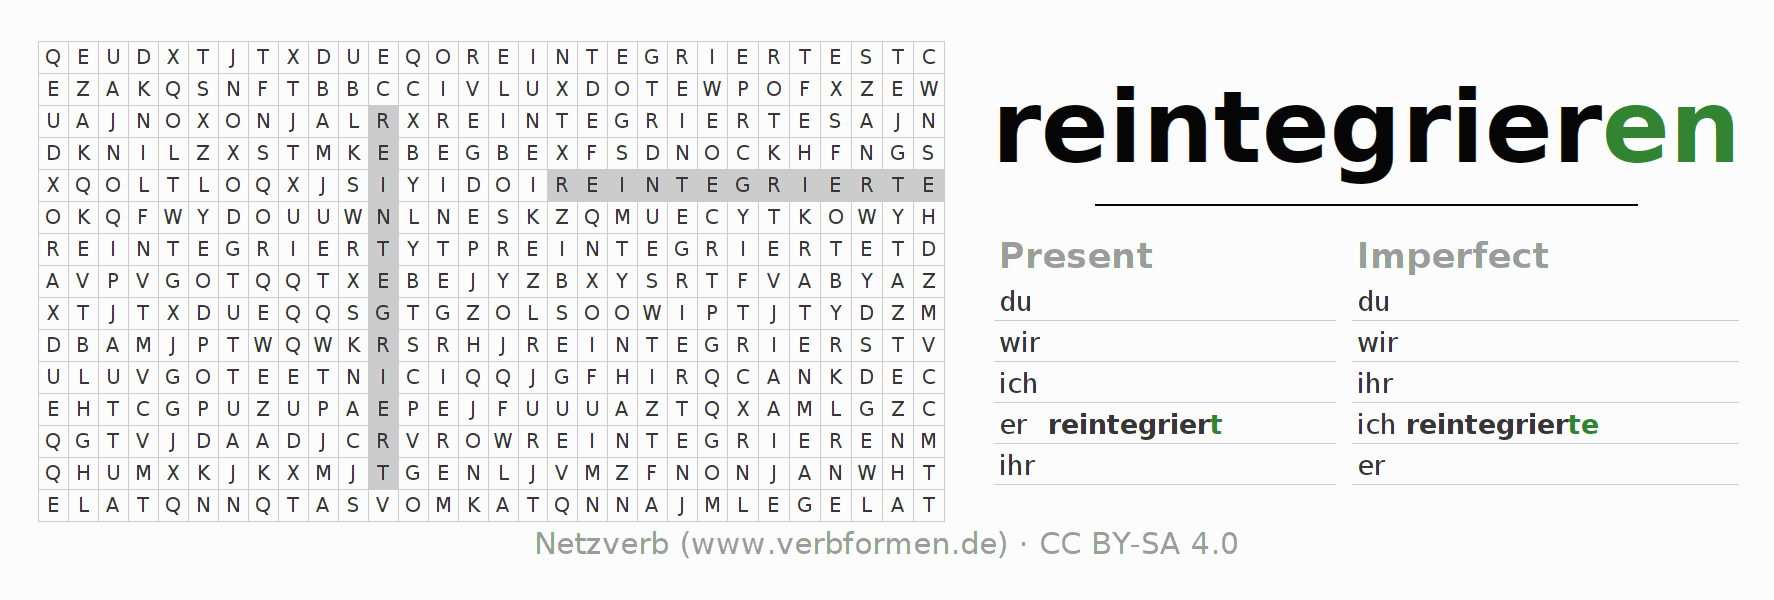 Word search puzzle for the conjugation of the verb reintegrieren